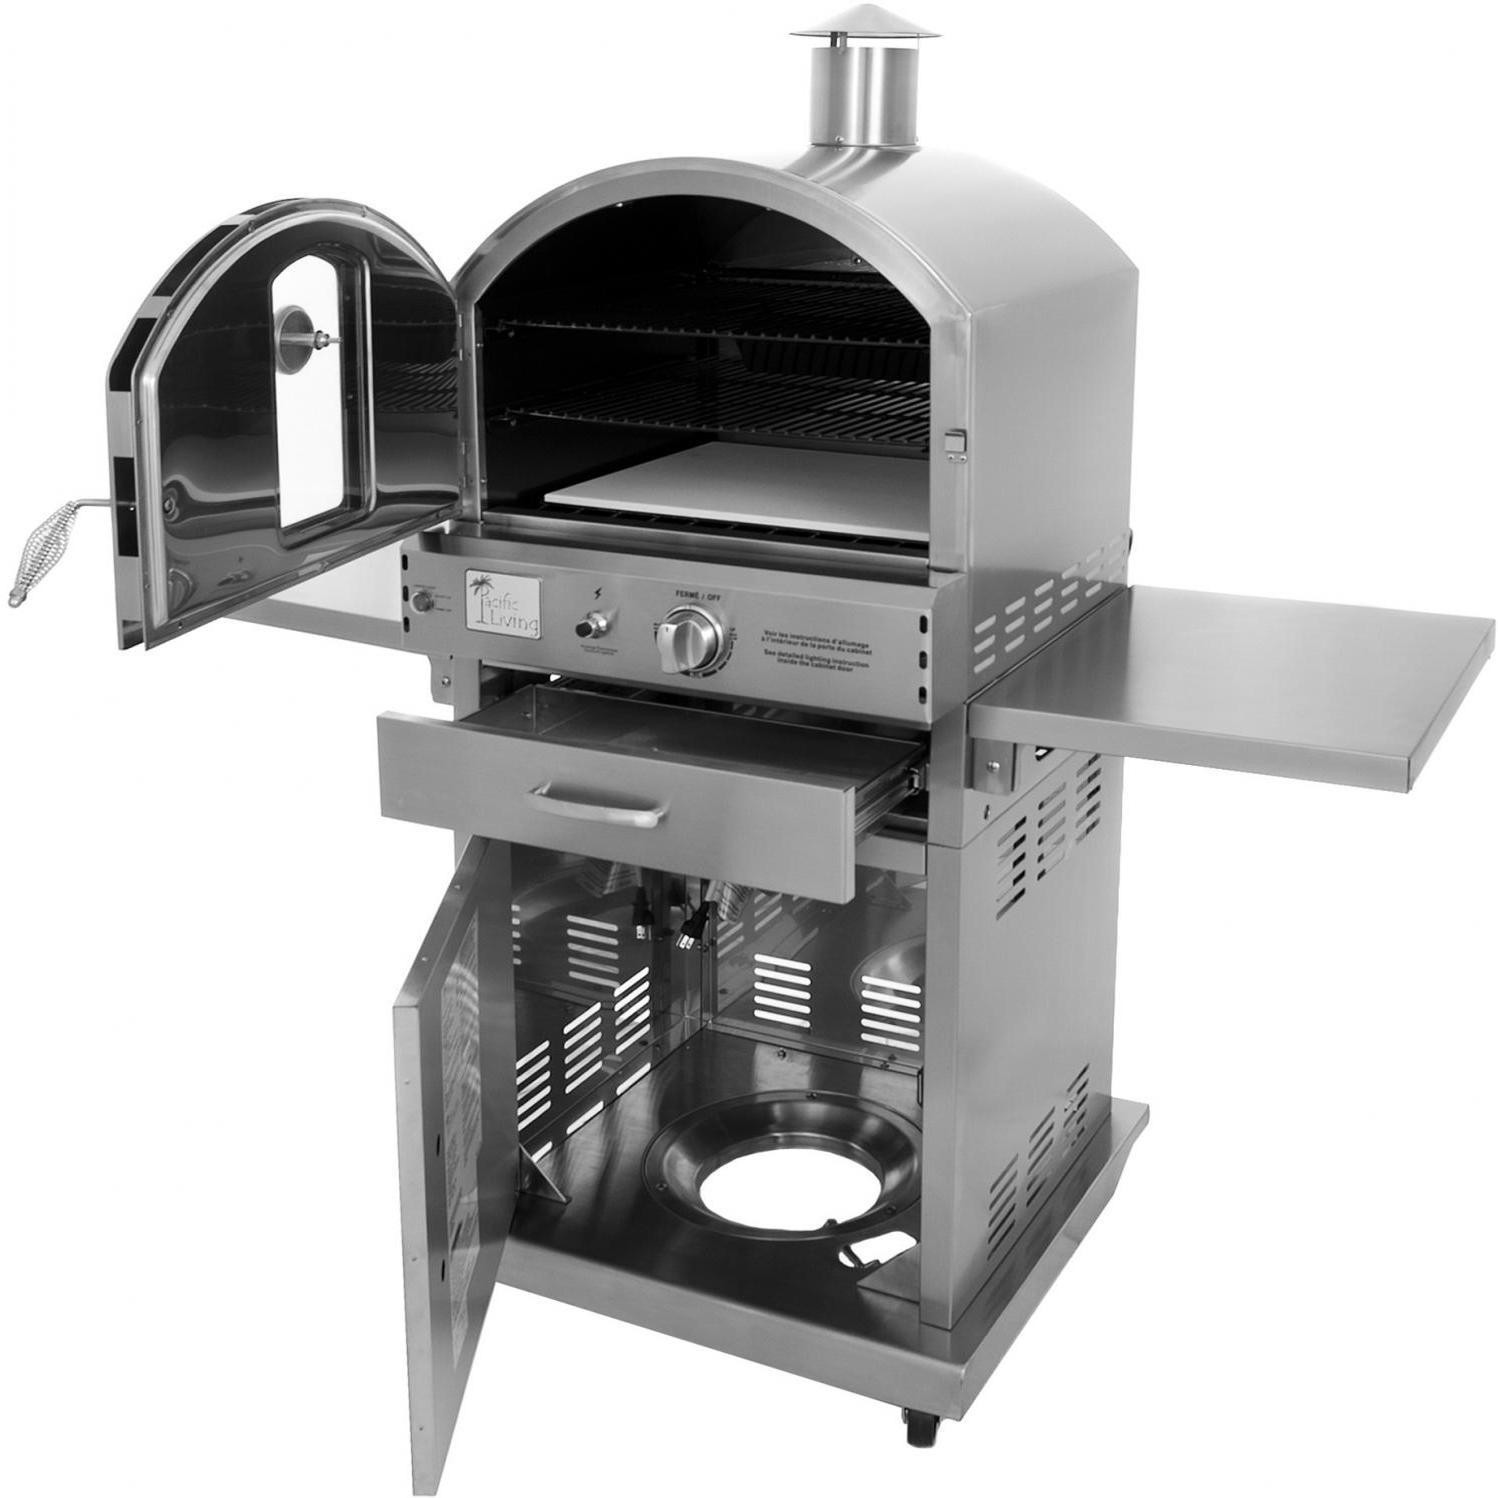 Pacific Living : Pacific Living Outdoor Oven - Backyard Review  Busted Wallet